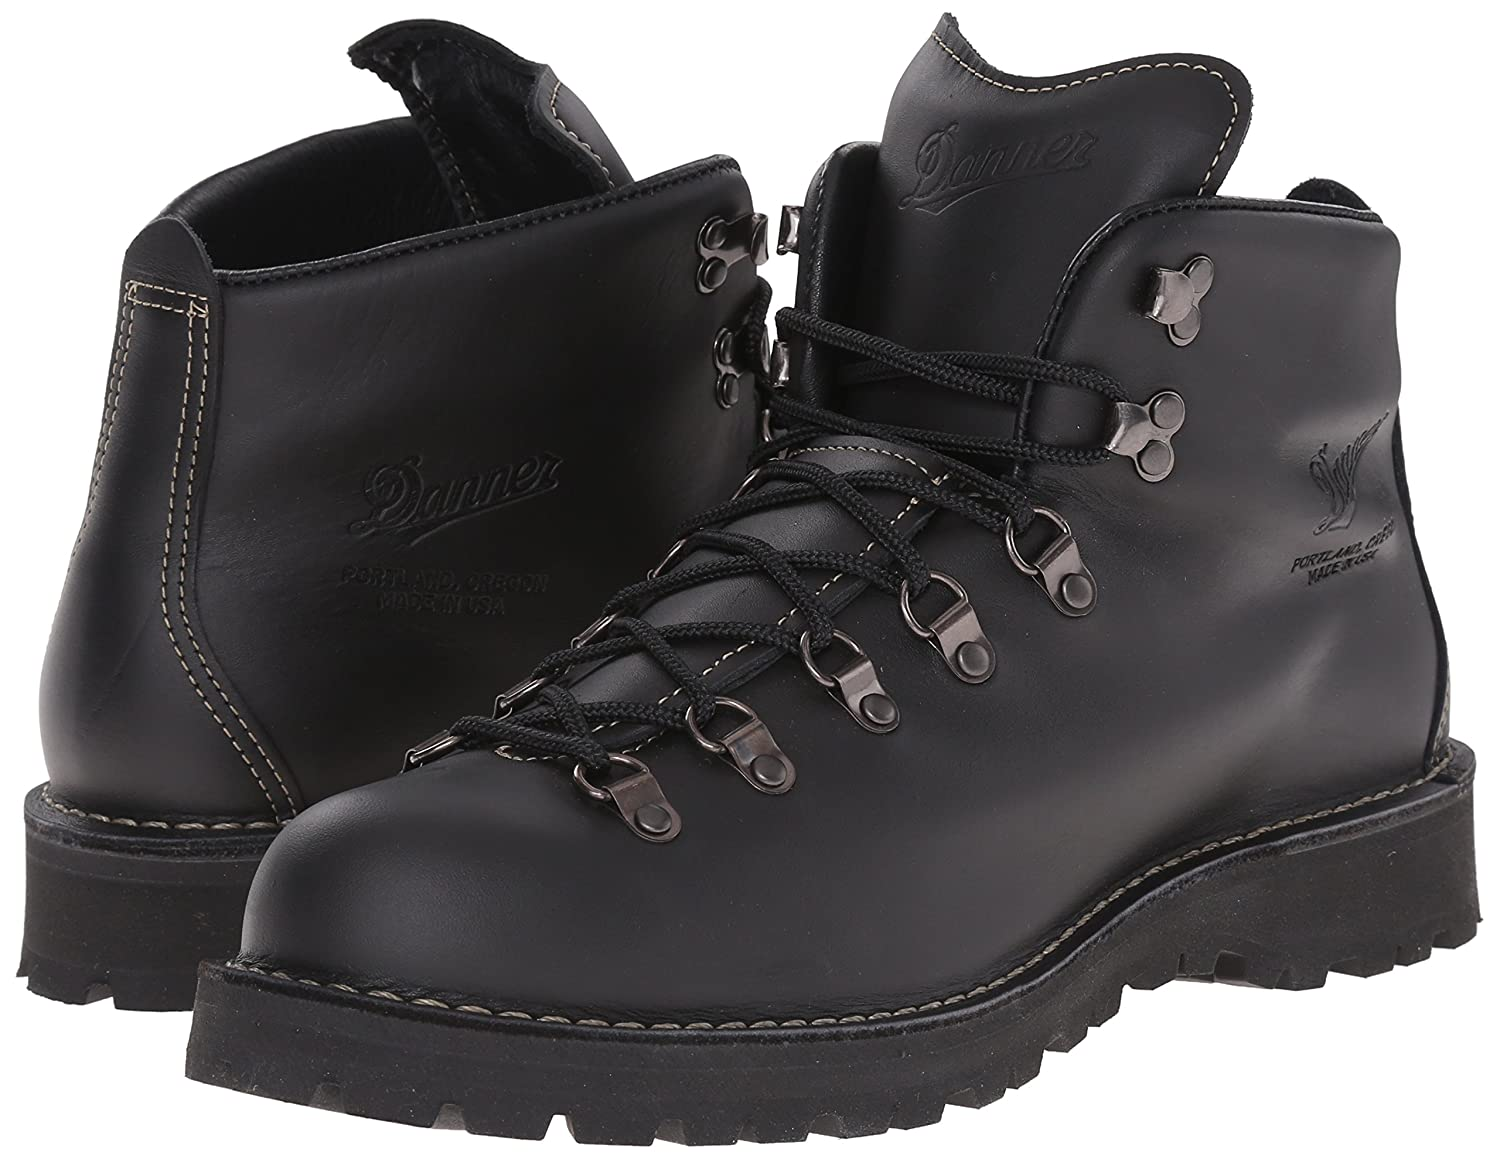 Danner Men's Mountain Light II GTX Boot: Amazon.ca: Shoes & Handbags